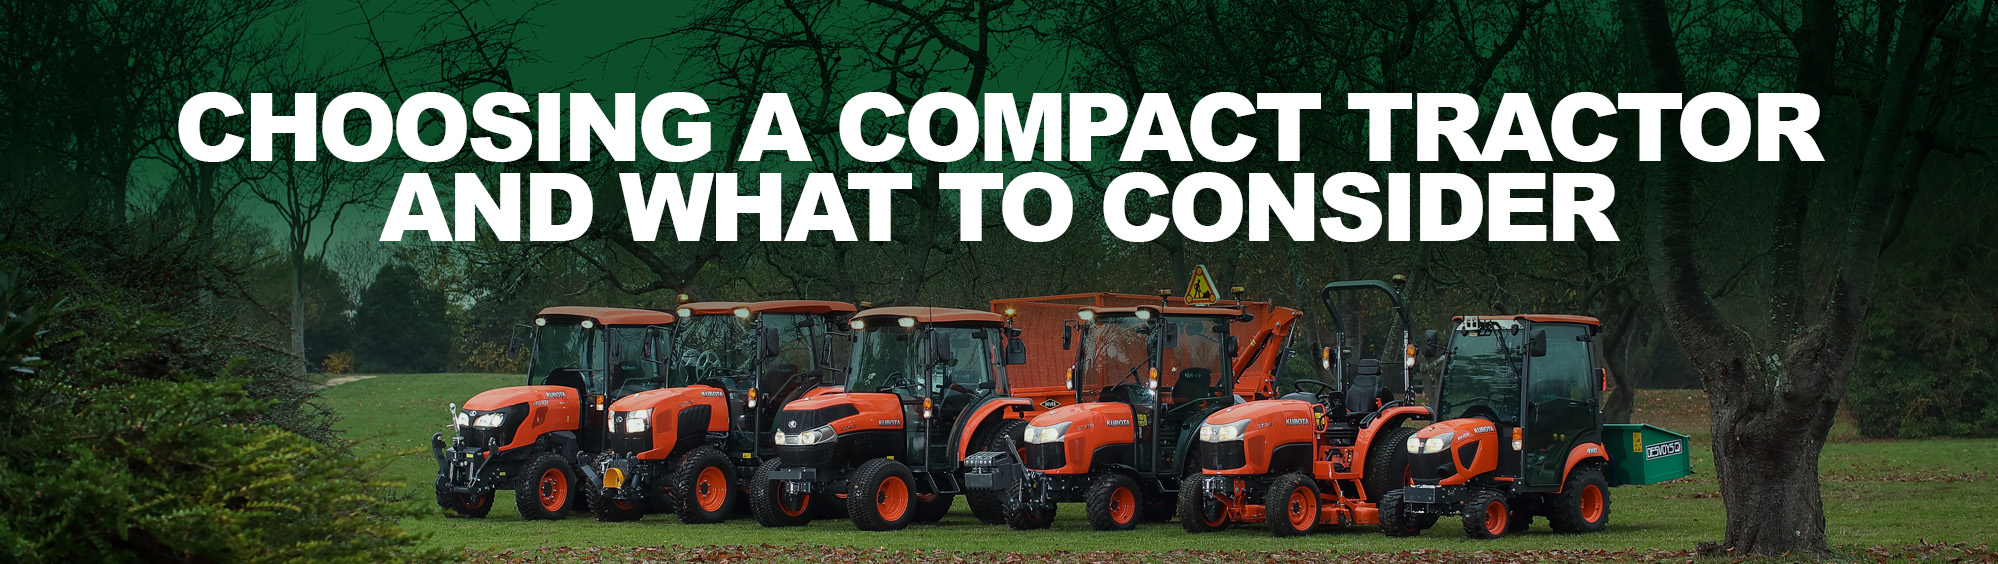 Choosing a Compact Tractor and what to consider